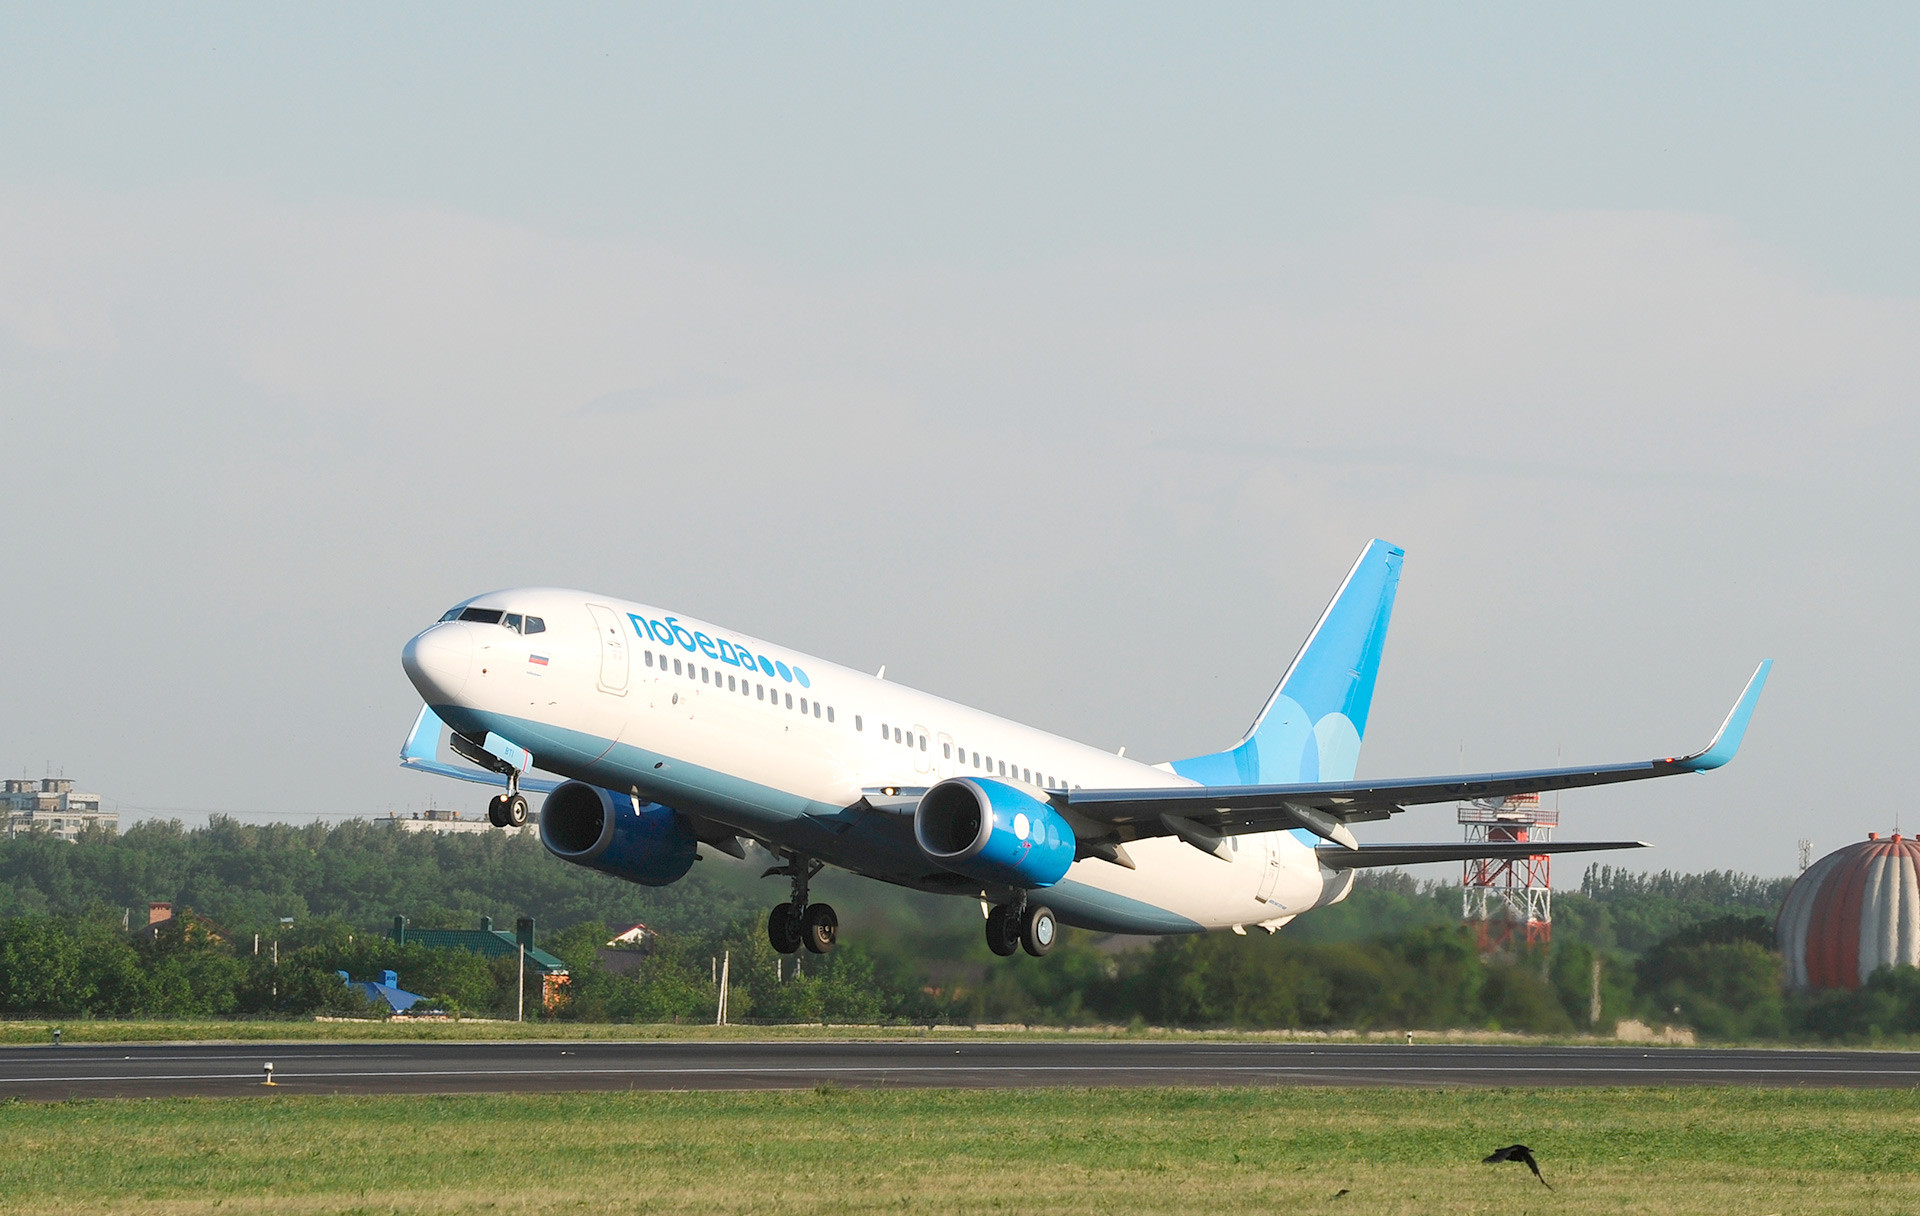 Russia has just one low-cost air carrier serving domestic routes - Pobeda.